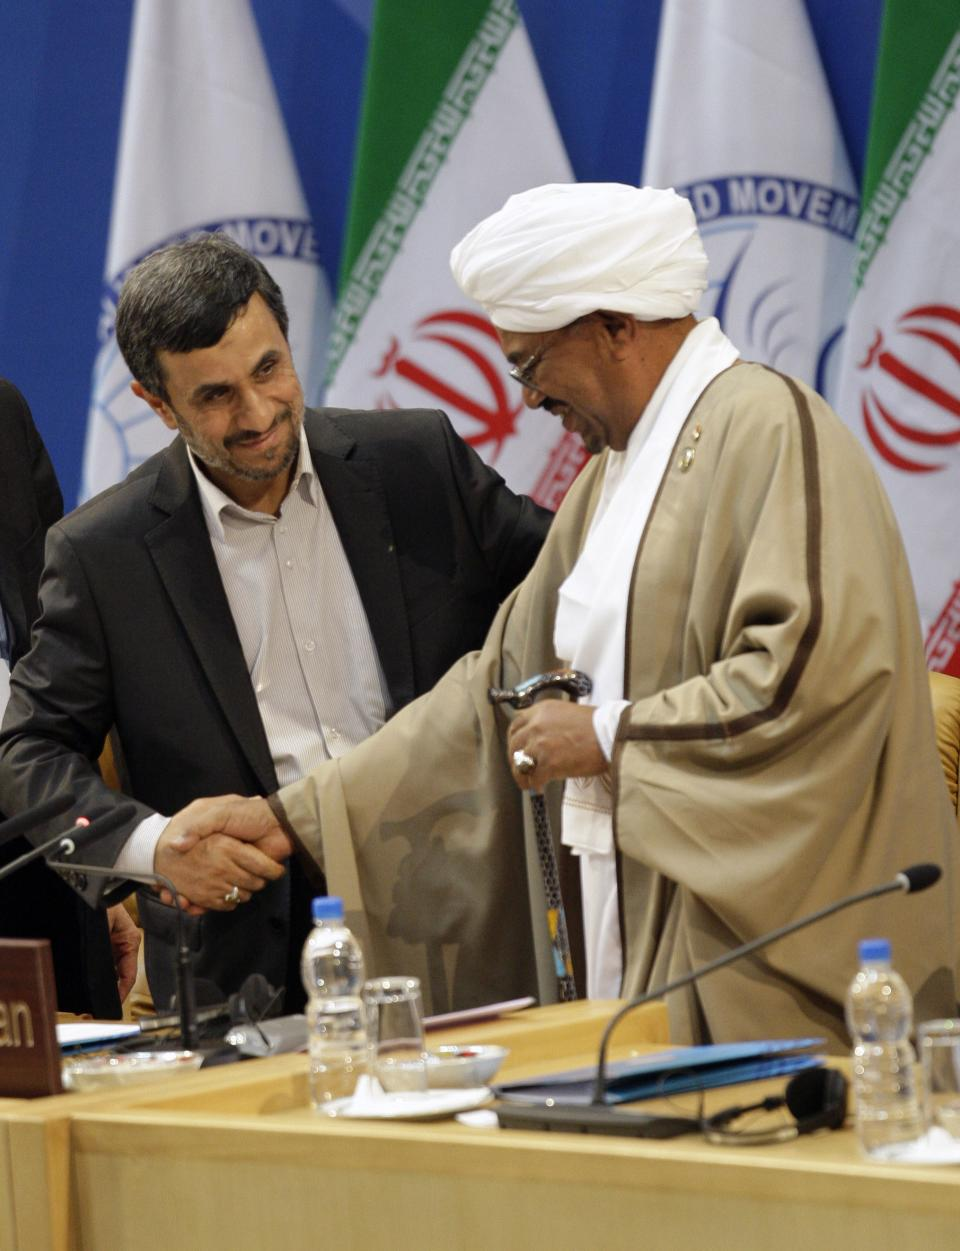 Iranian President Mahmoud Ahmadinejad, left, welcomes Sudanese President Omar al-Bashir, right, at the Nonaligned Movement summit in Tehran, Iran, Friday, Aug. 31, 2012. (AP Photo/Vahid Salemi)